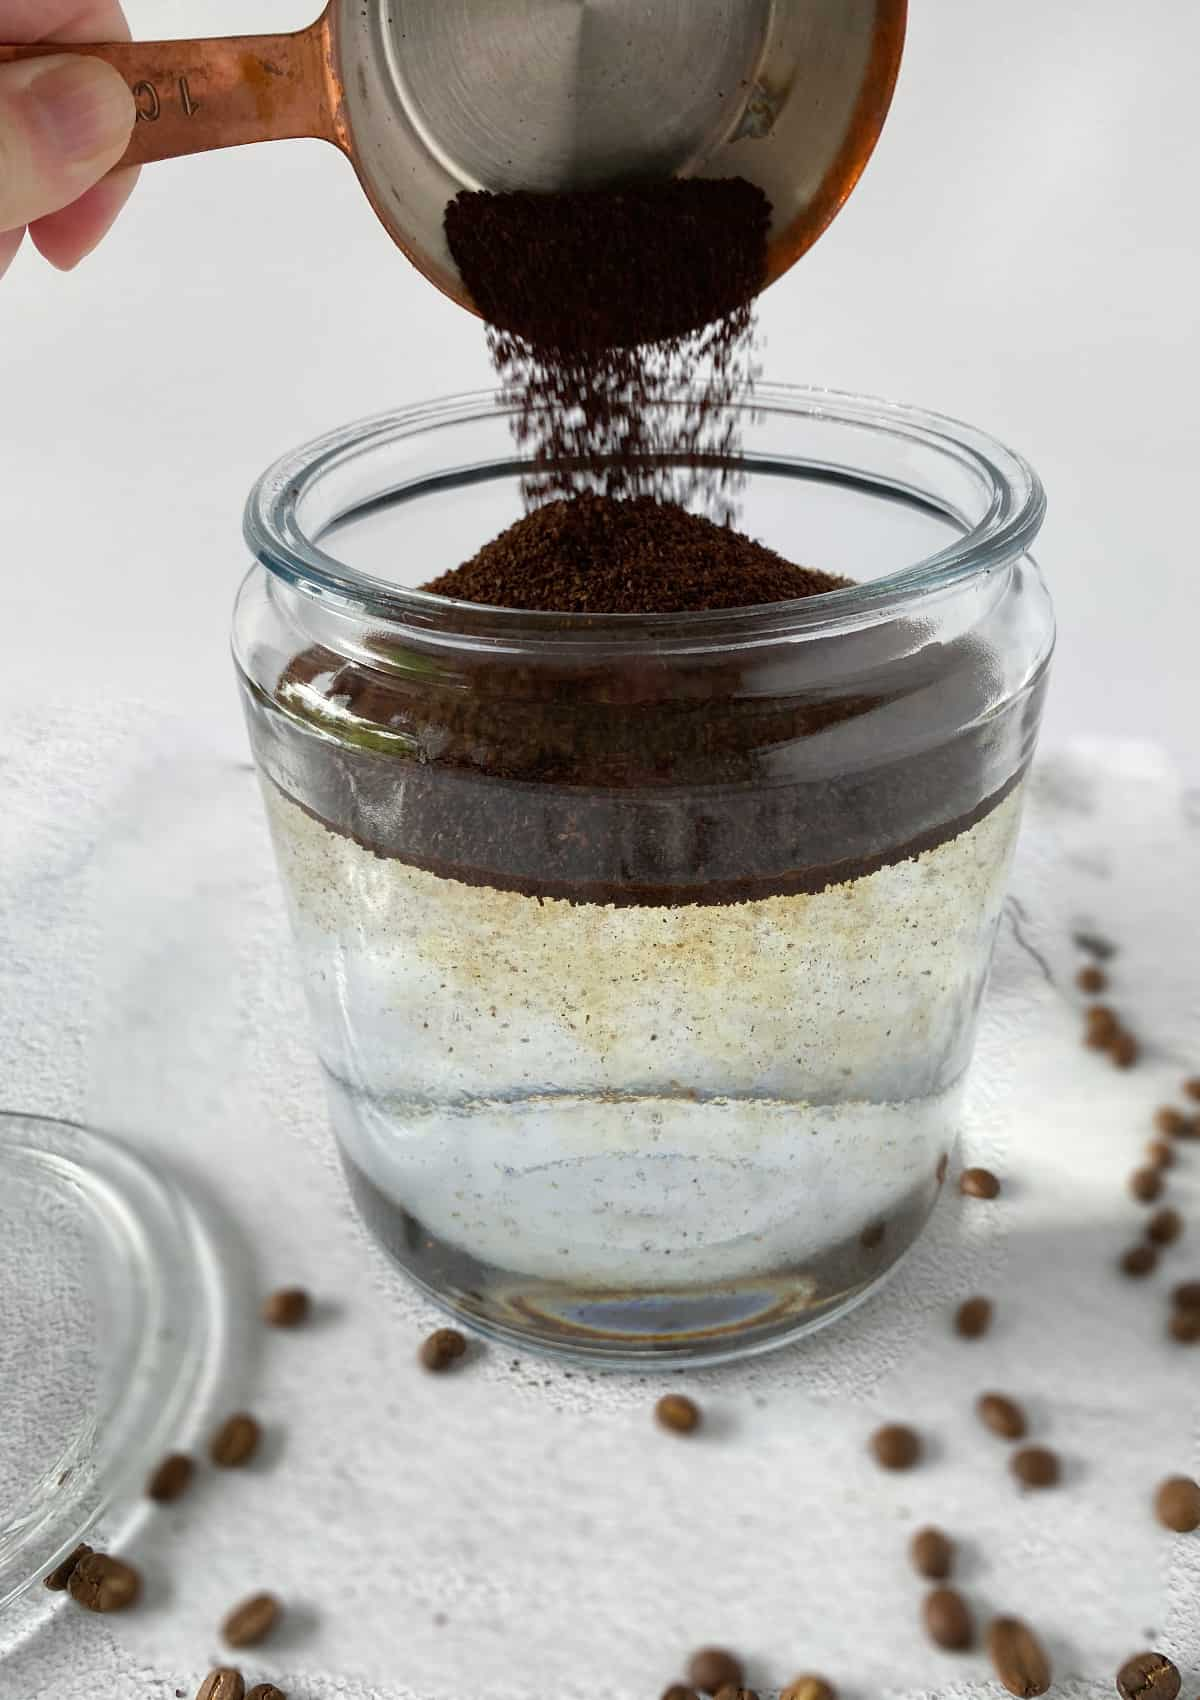 coffee grounds being poured into a glass jar of water for homemade cold brew coffee